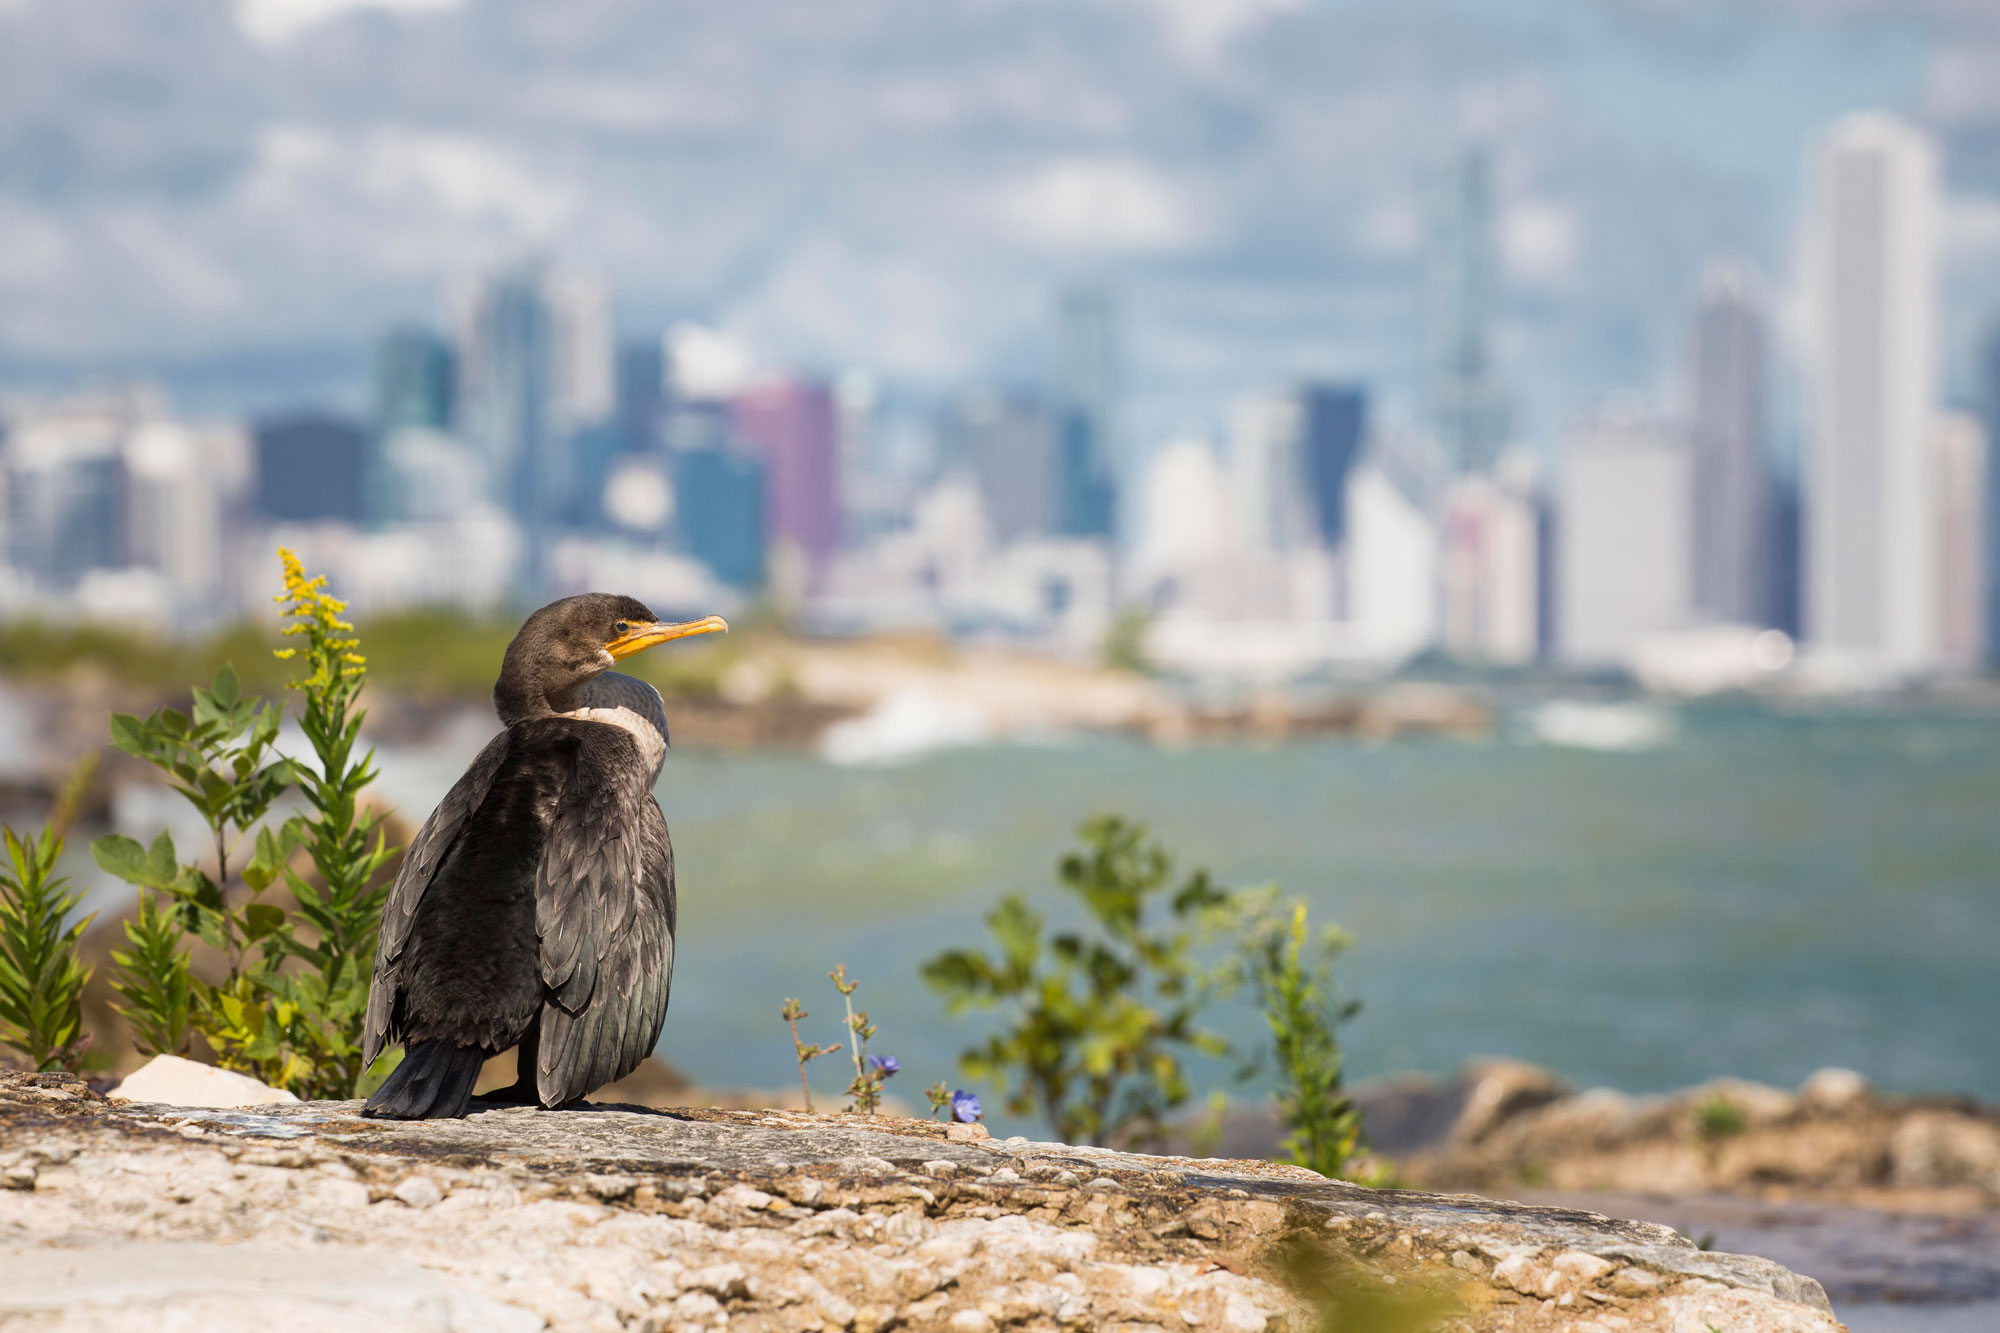 A water bird perches on a rock near a few small plants. A body of water and the Chicago skyline are out of focus in the far distance.